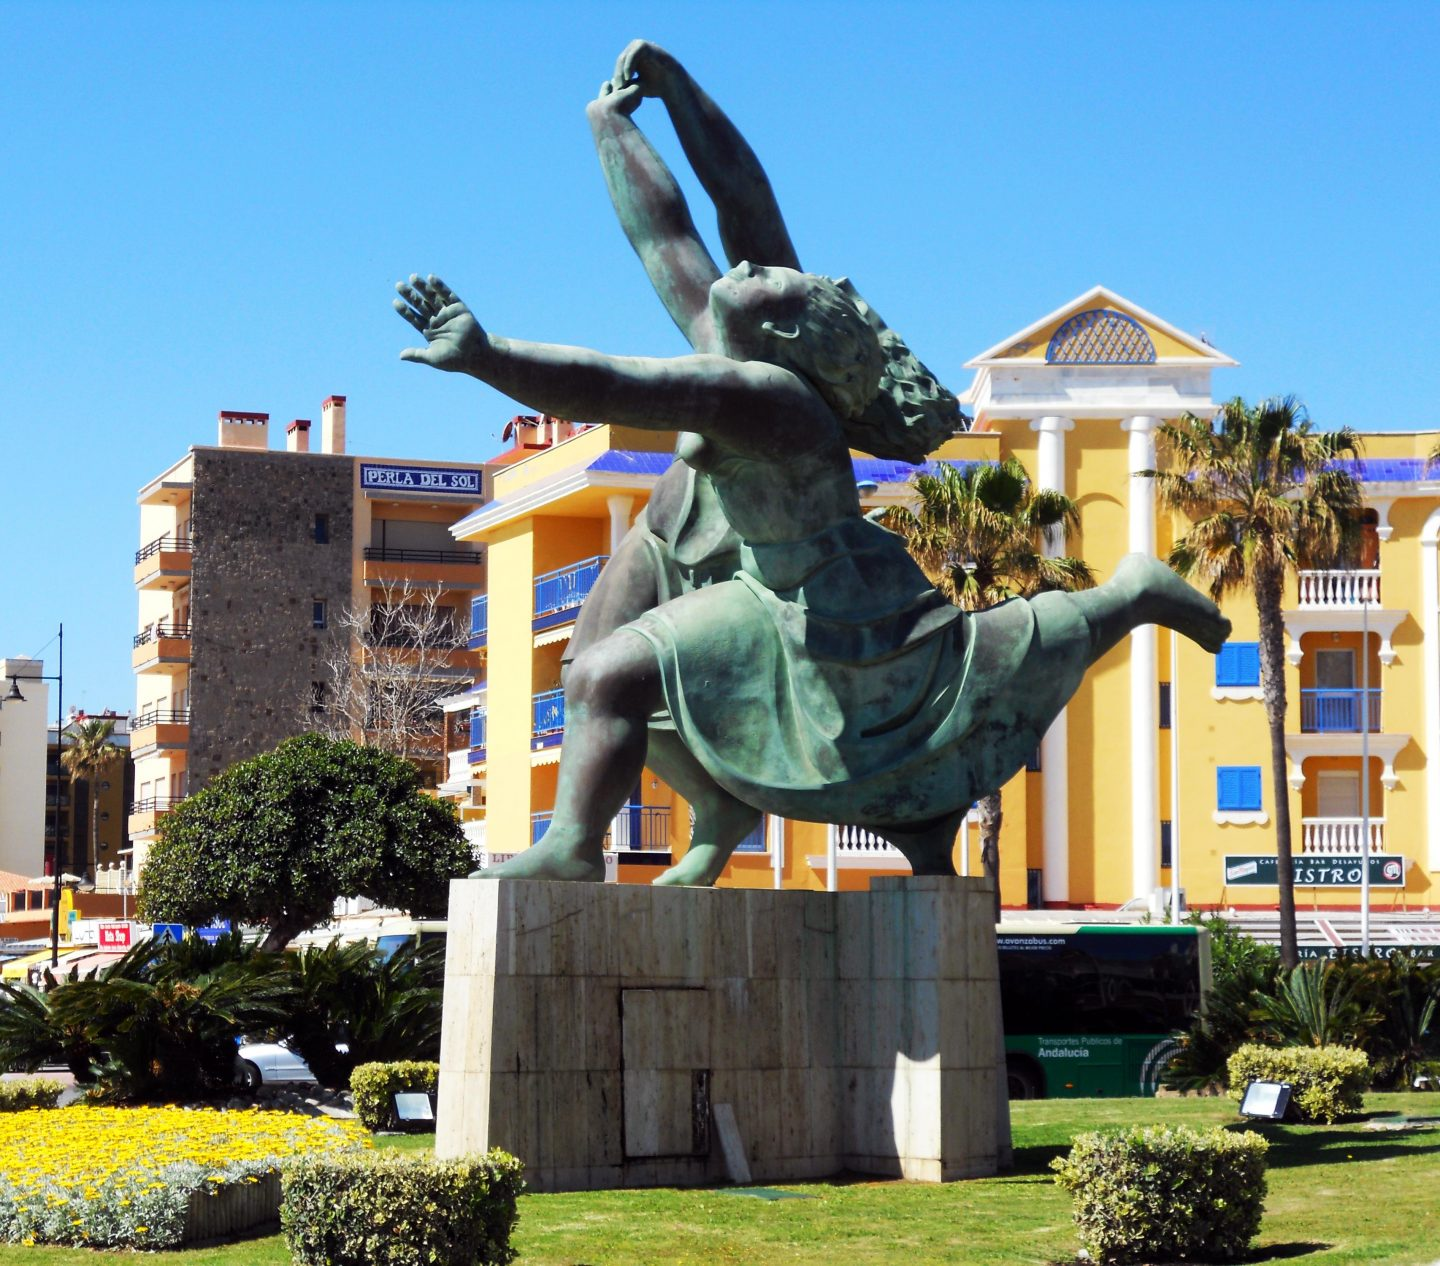 The Three Dancers sculpture in Torremolinos, Spain